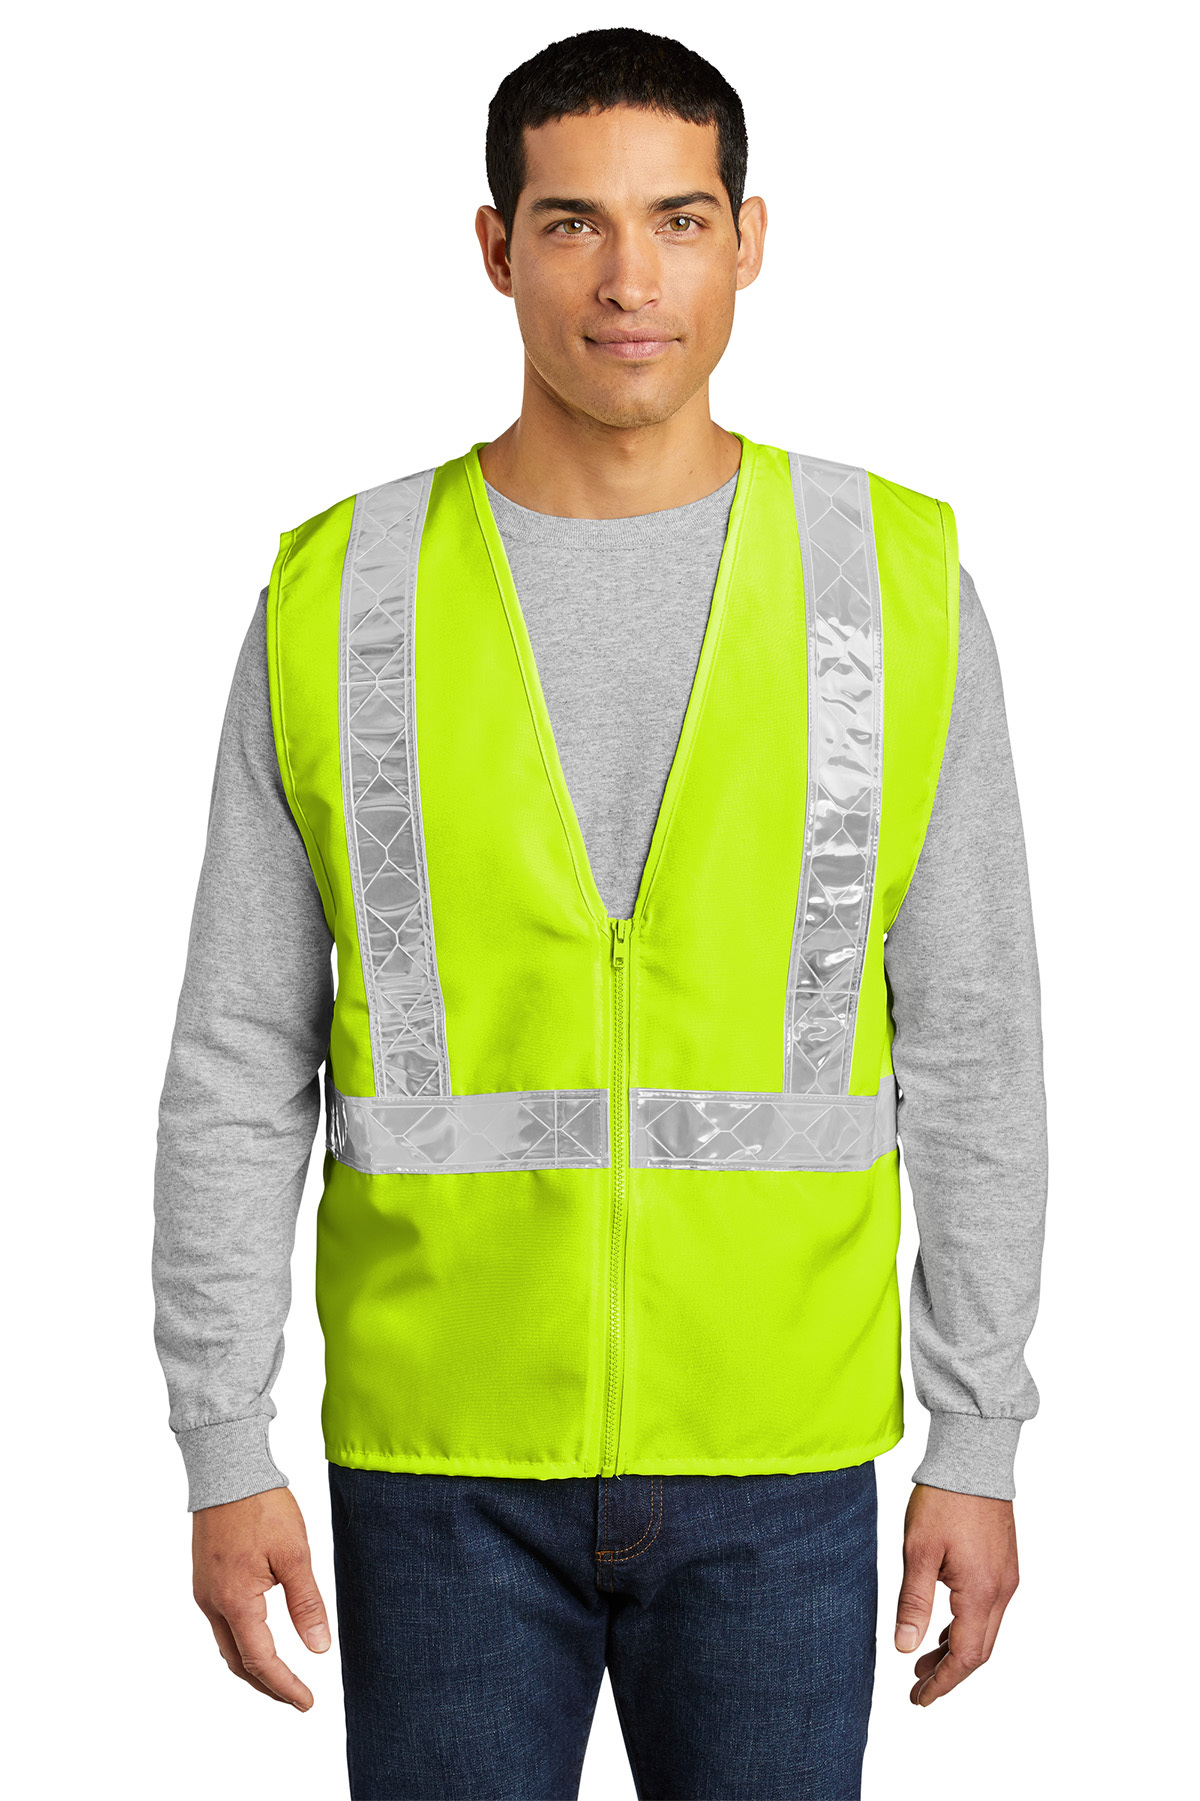 Port authority high visibility safety apparel vest hassan fidelity investment